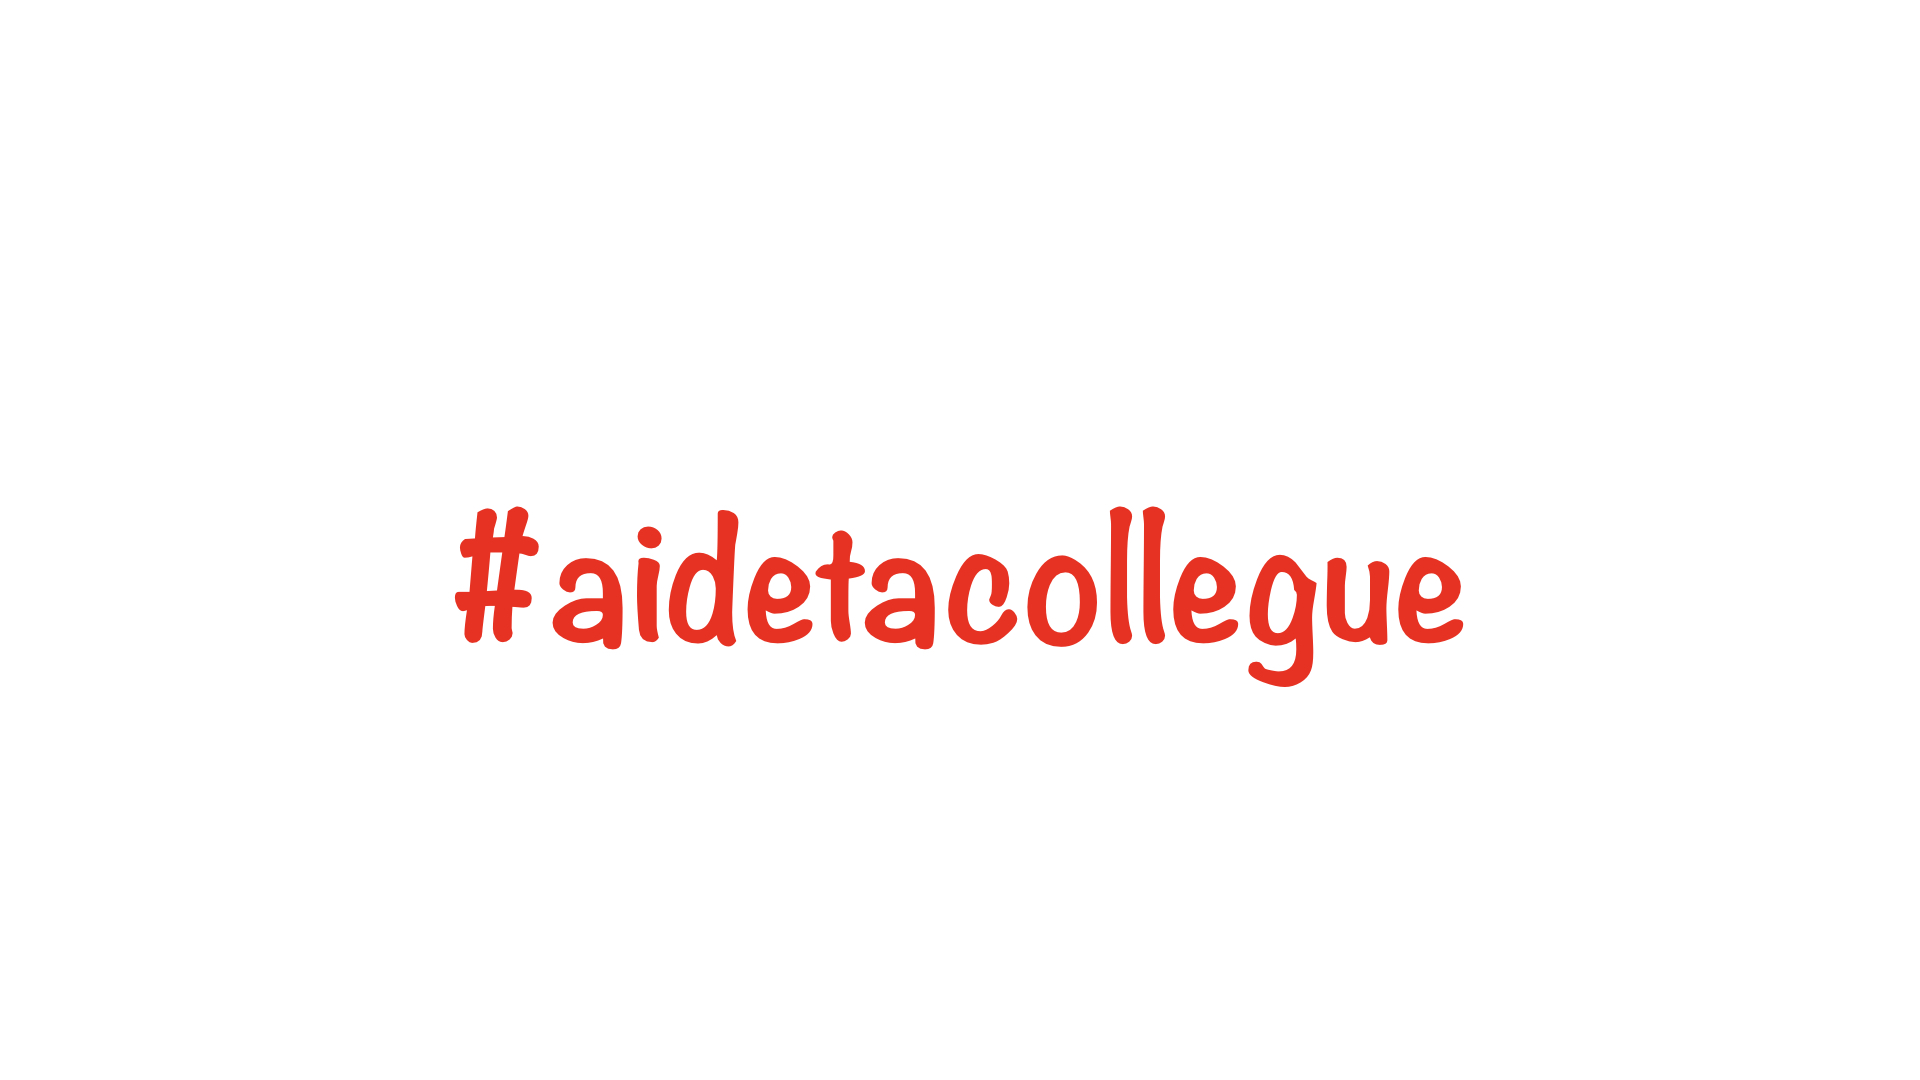 Blandine Métayer, marraine de la campagne #aidetacollegue